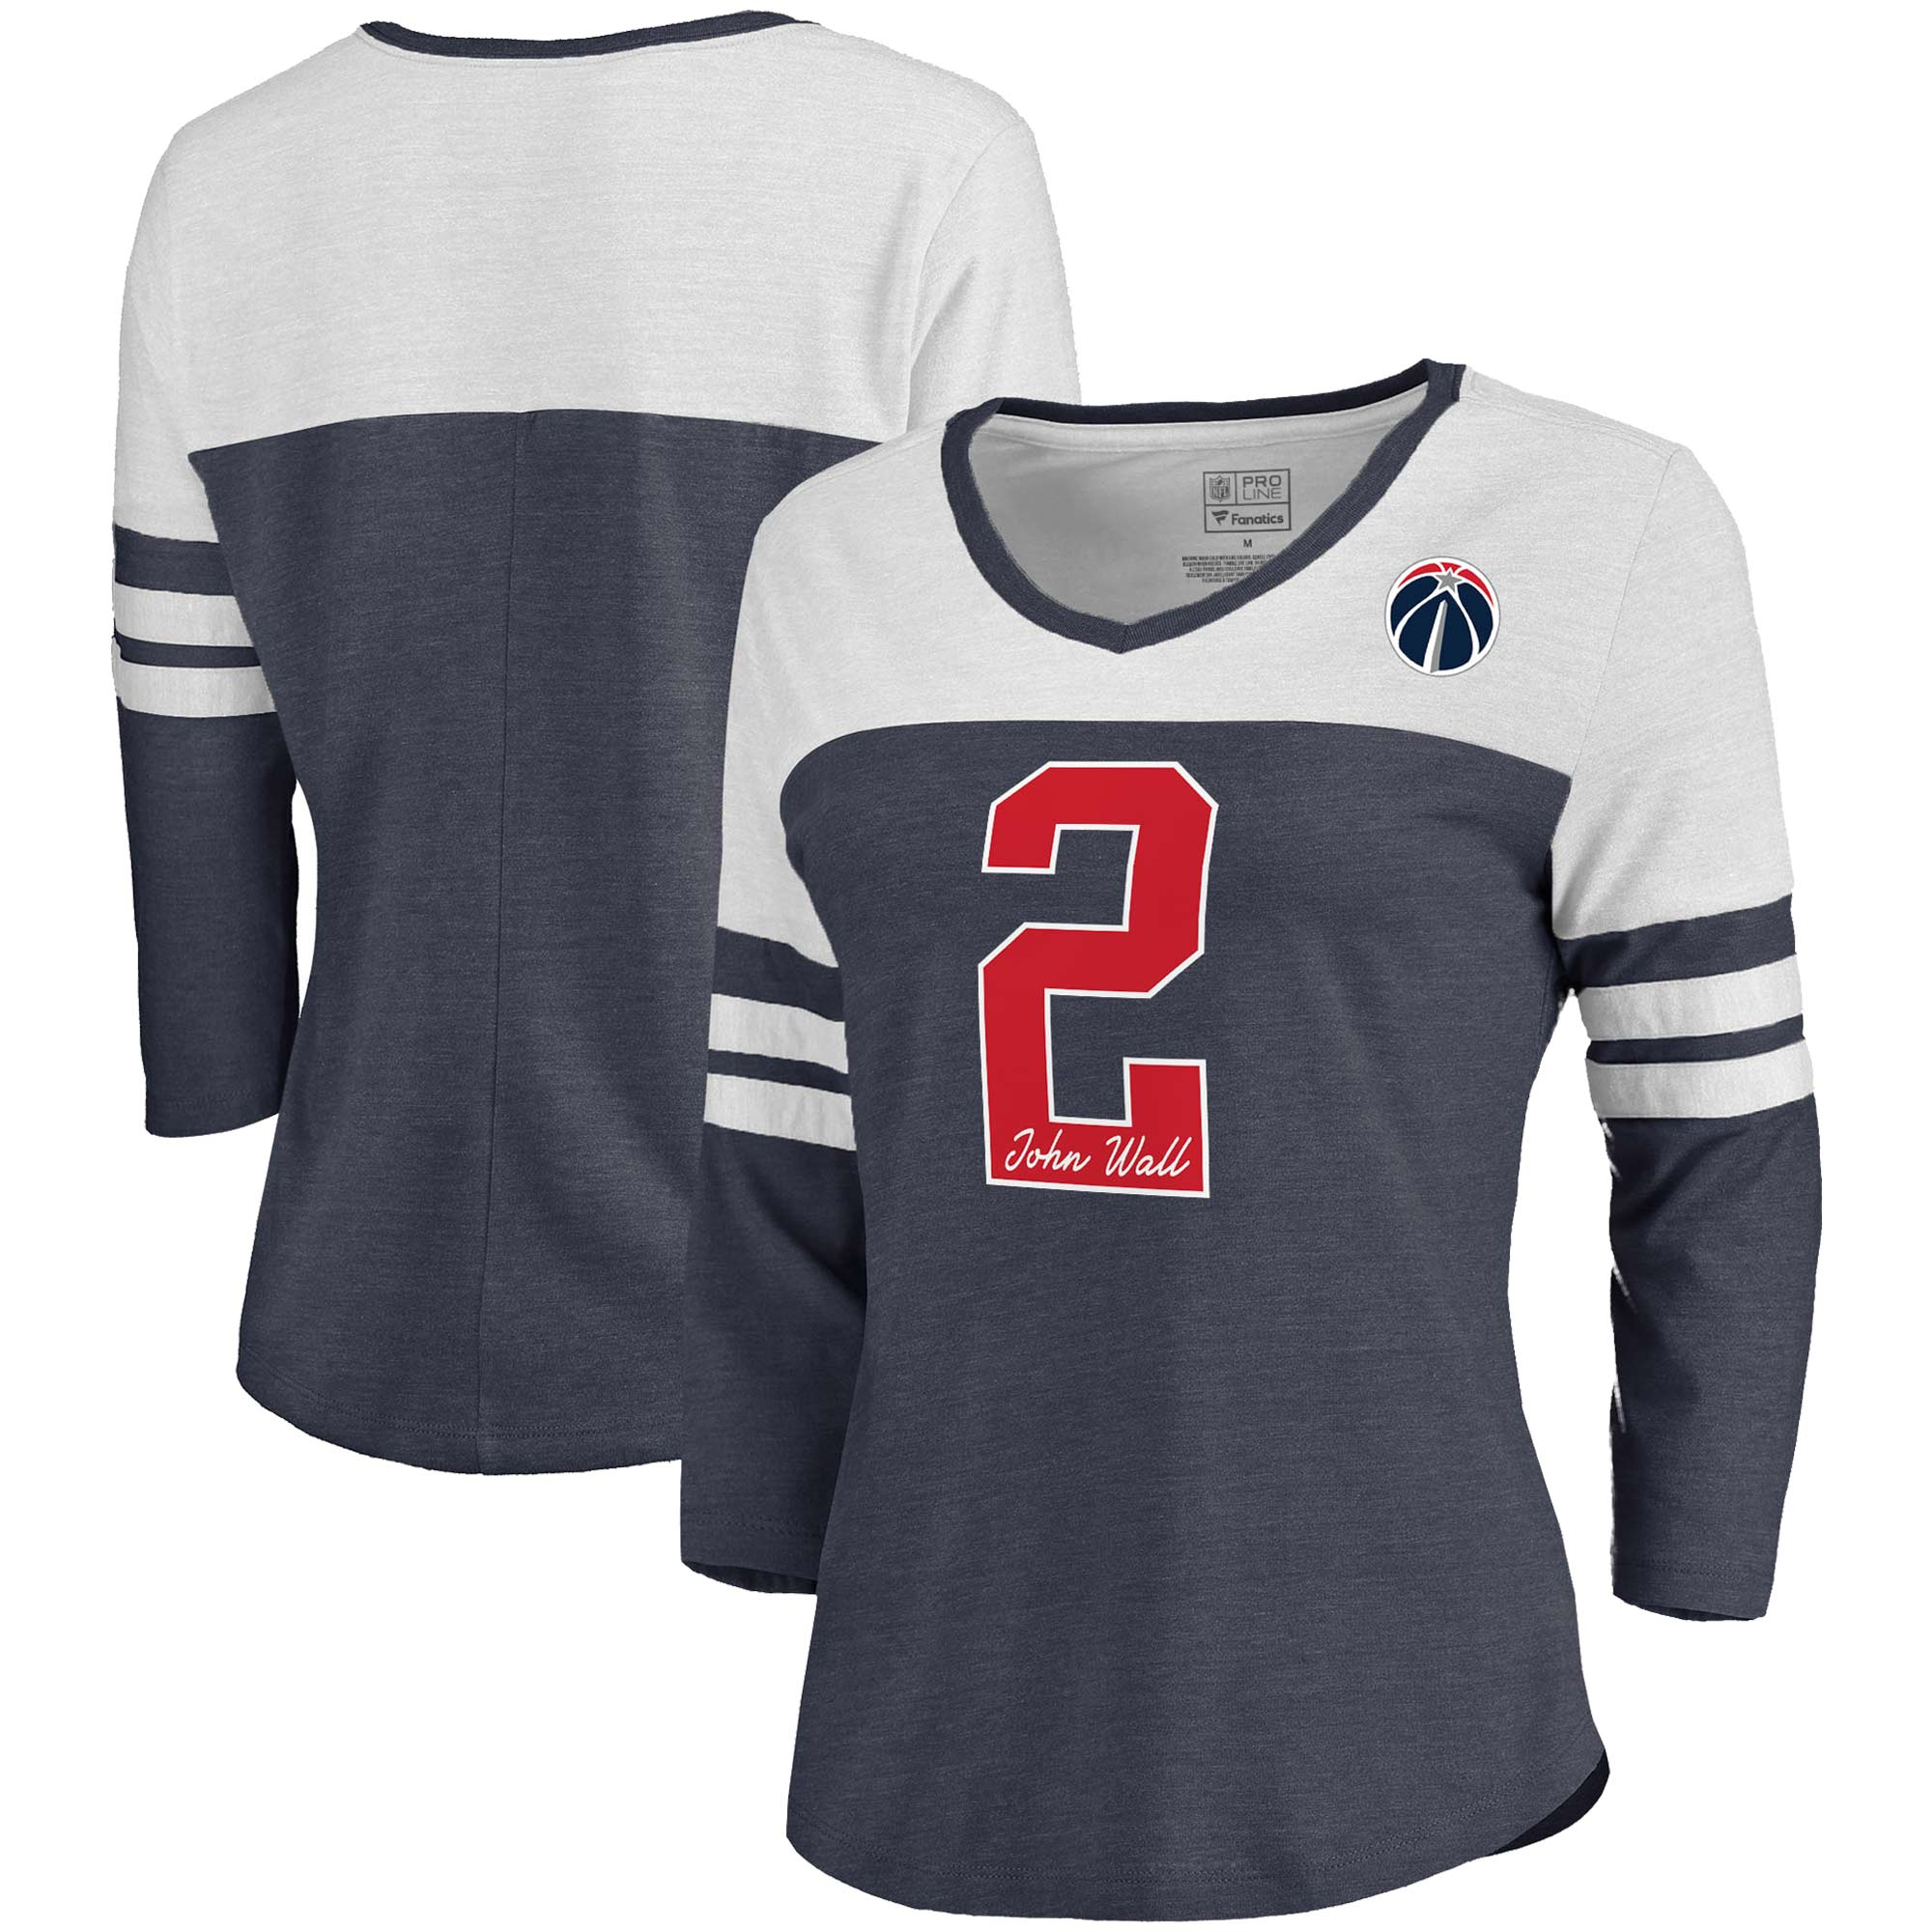 John Wall Washington Wizards Fanatics Branded Women's Starstruck Name & Number Tri-Blend 3/4-Sleeve V-Neck T-Shirt - Navy